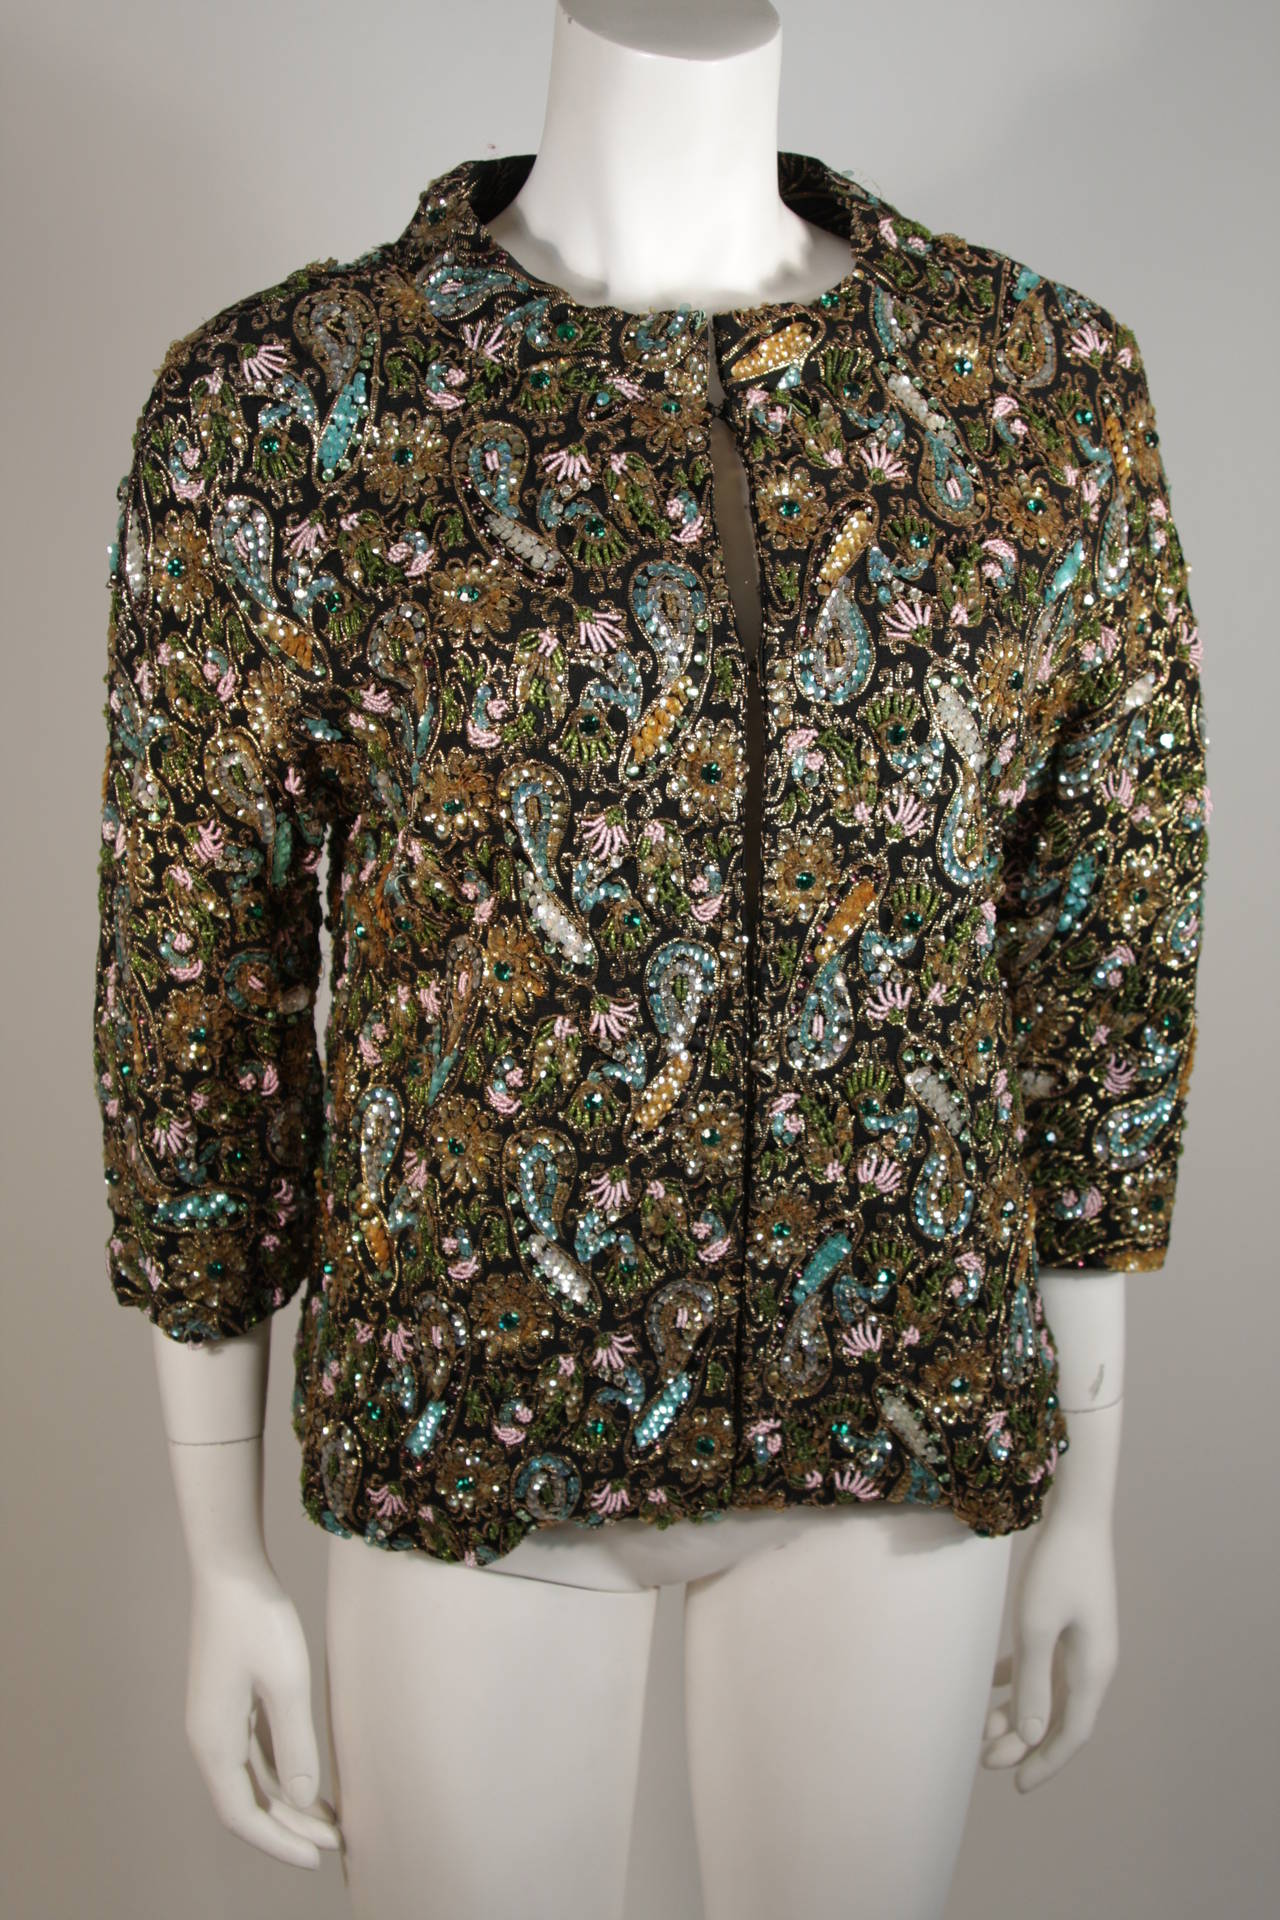 7b8c14ef This beautifully embellished Diane Imports jacket features a heavily beaded  floral motif in aqua, emerald